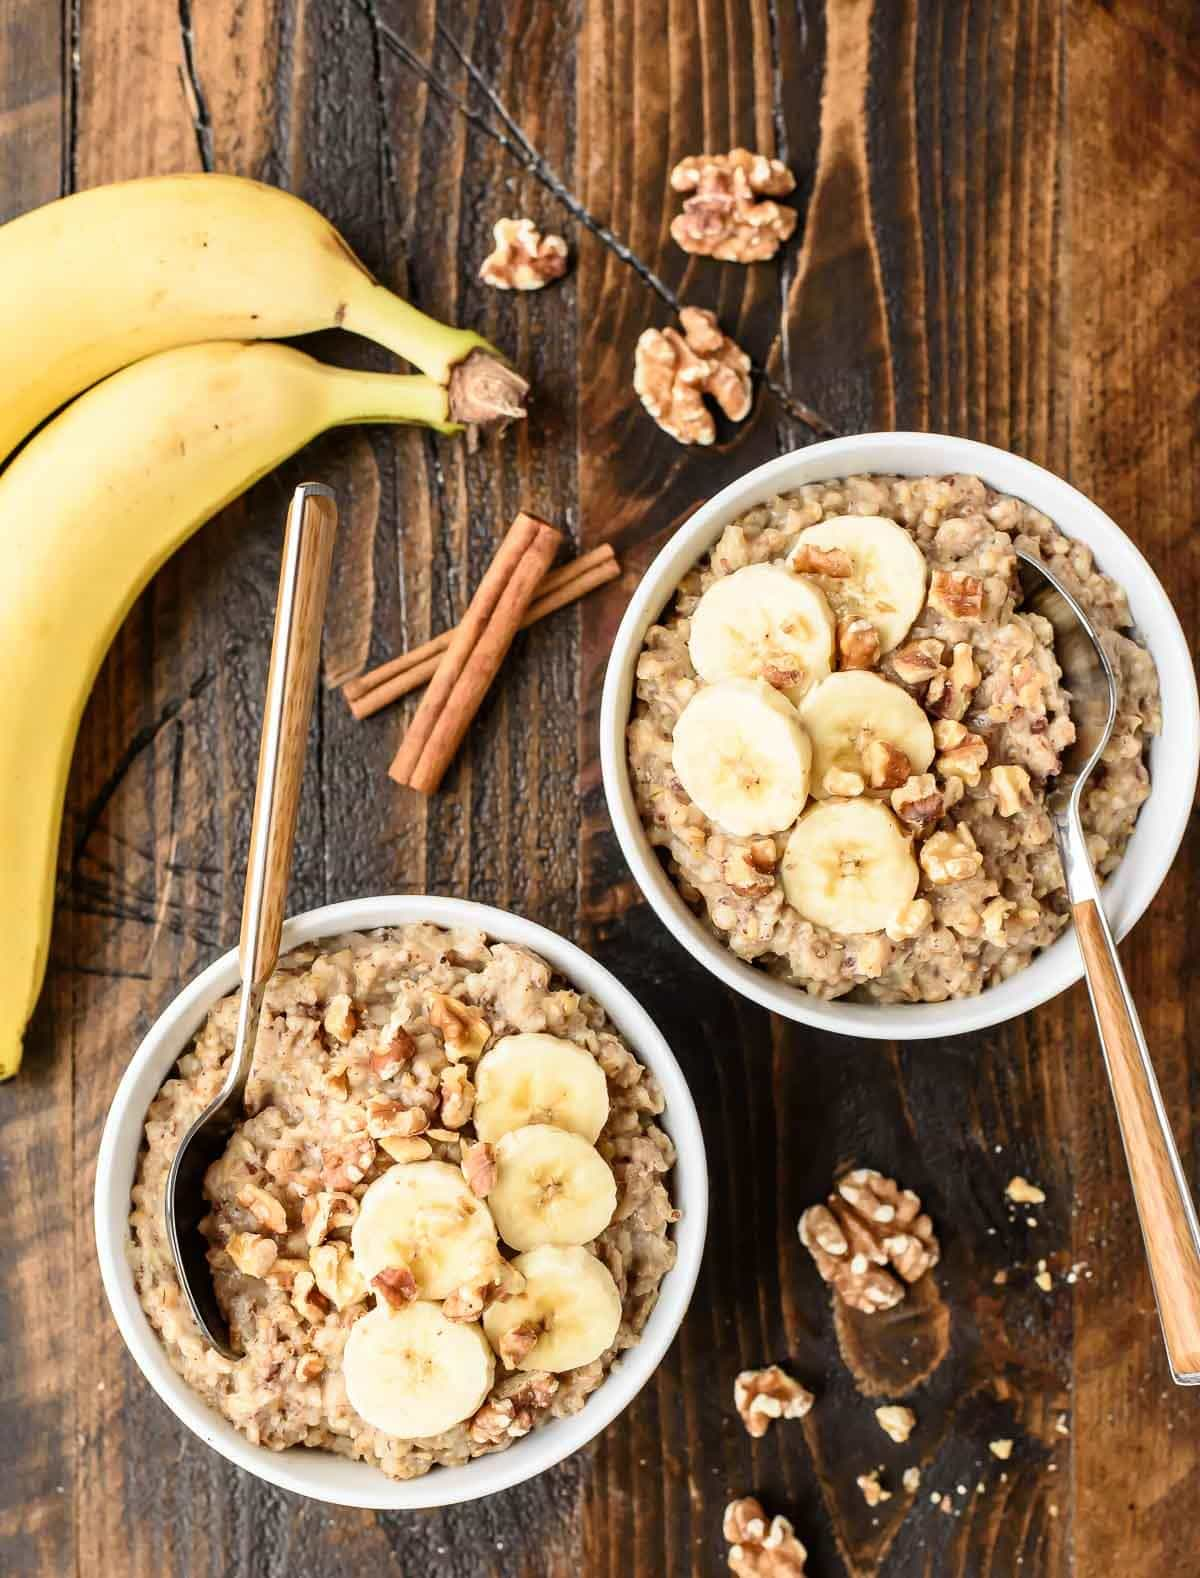 2 bowls of overnight steel cut oats next to fresh bananas and cinnamon sticks